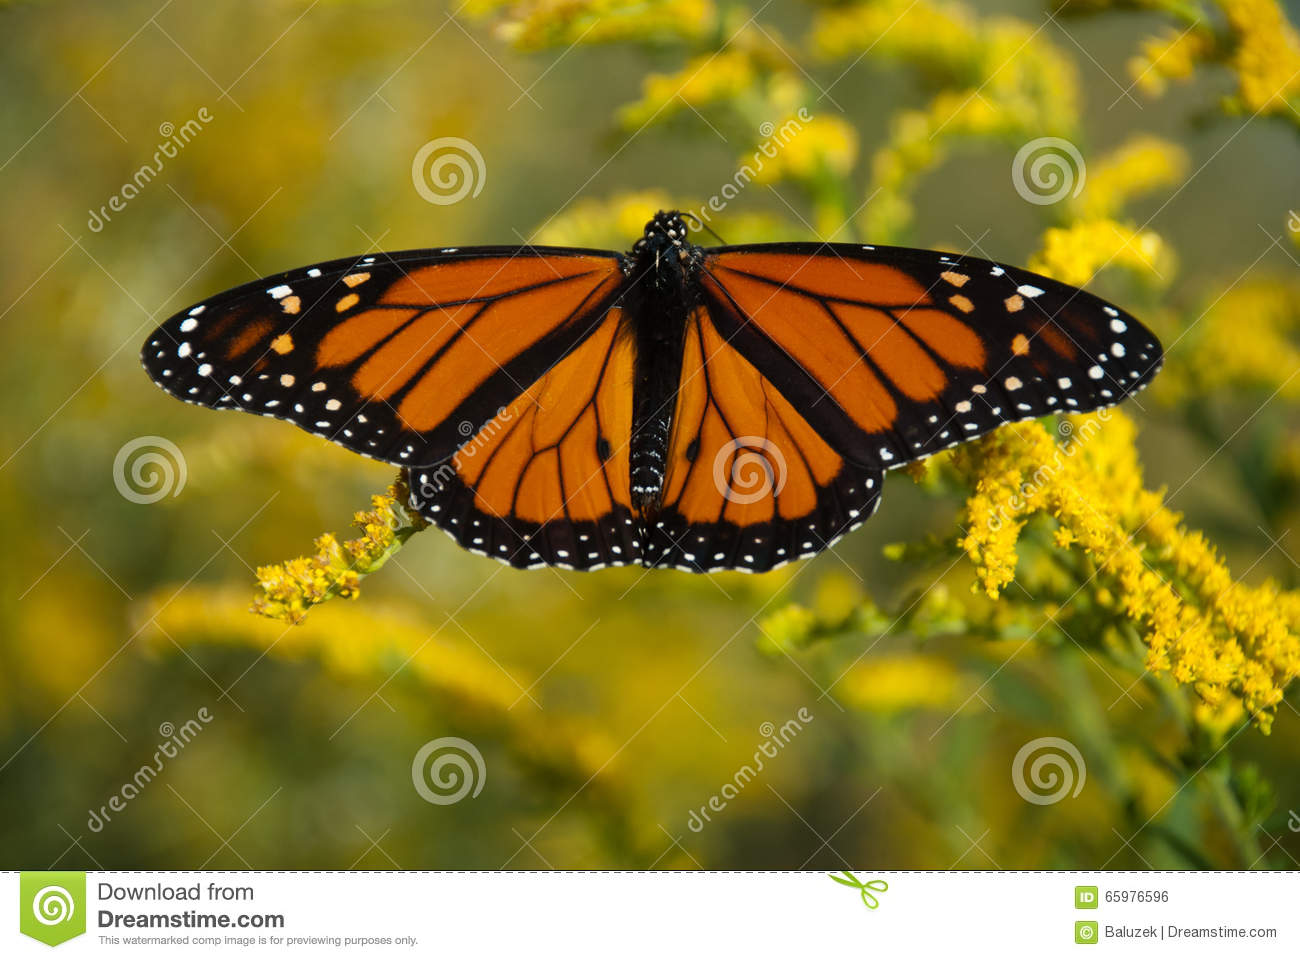 Swallowtail Is A Butterfly Of The Family Papilionidae. Stock Photo.